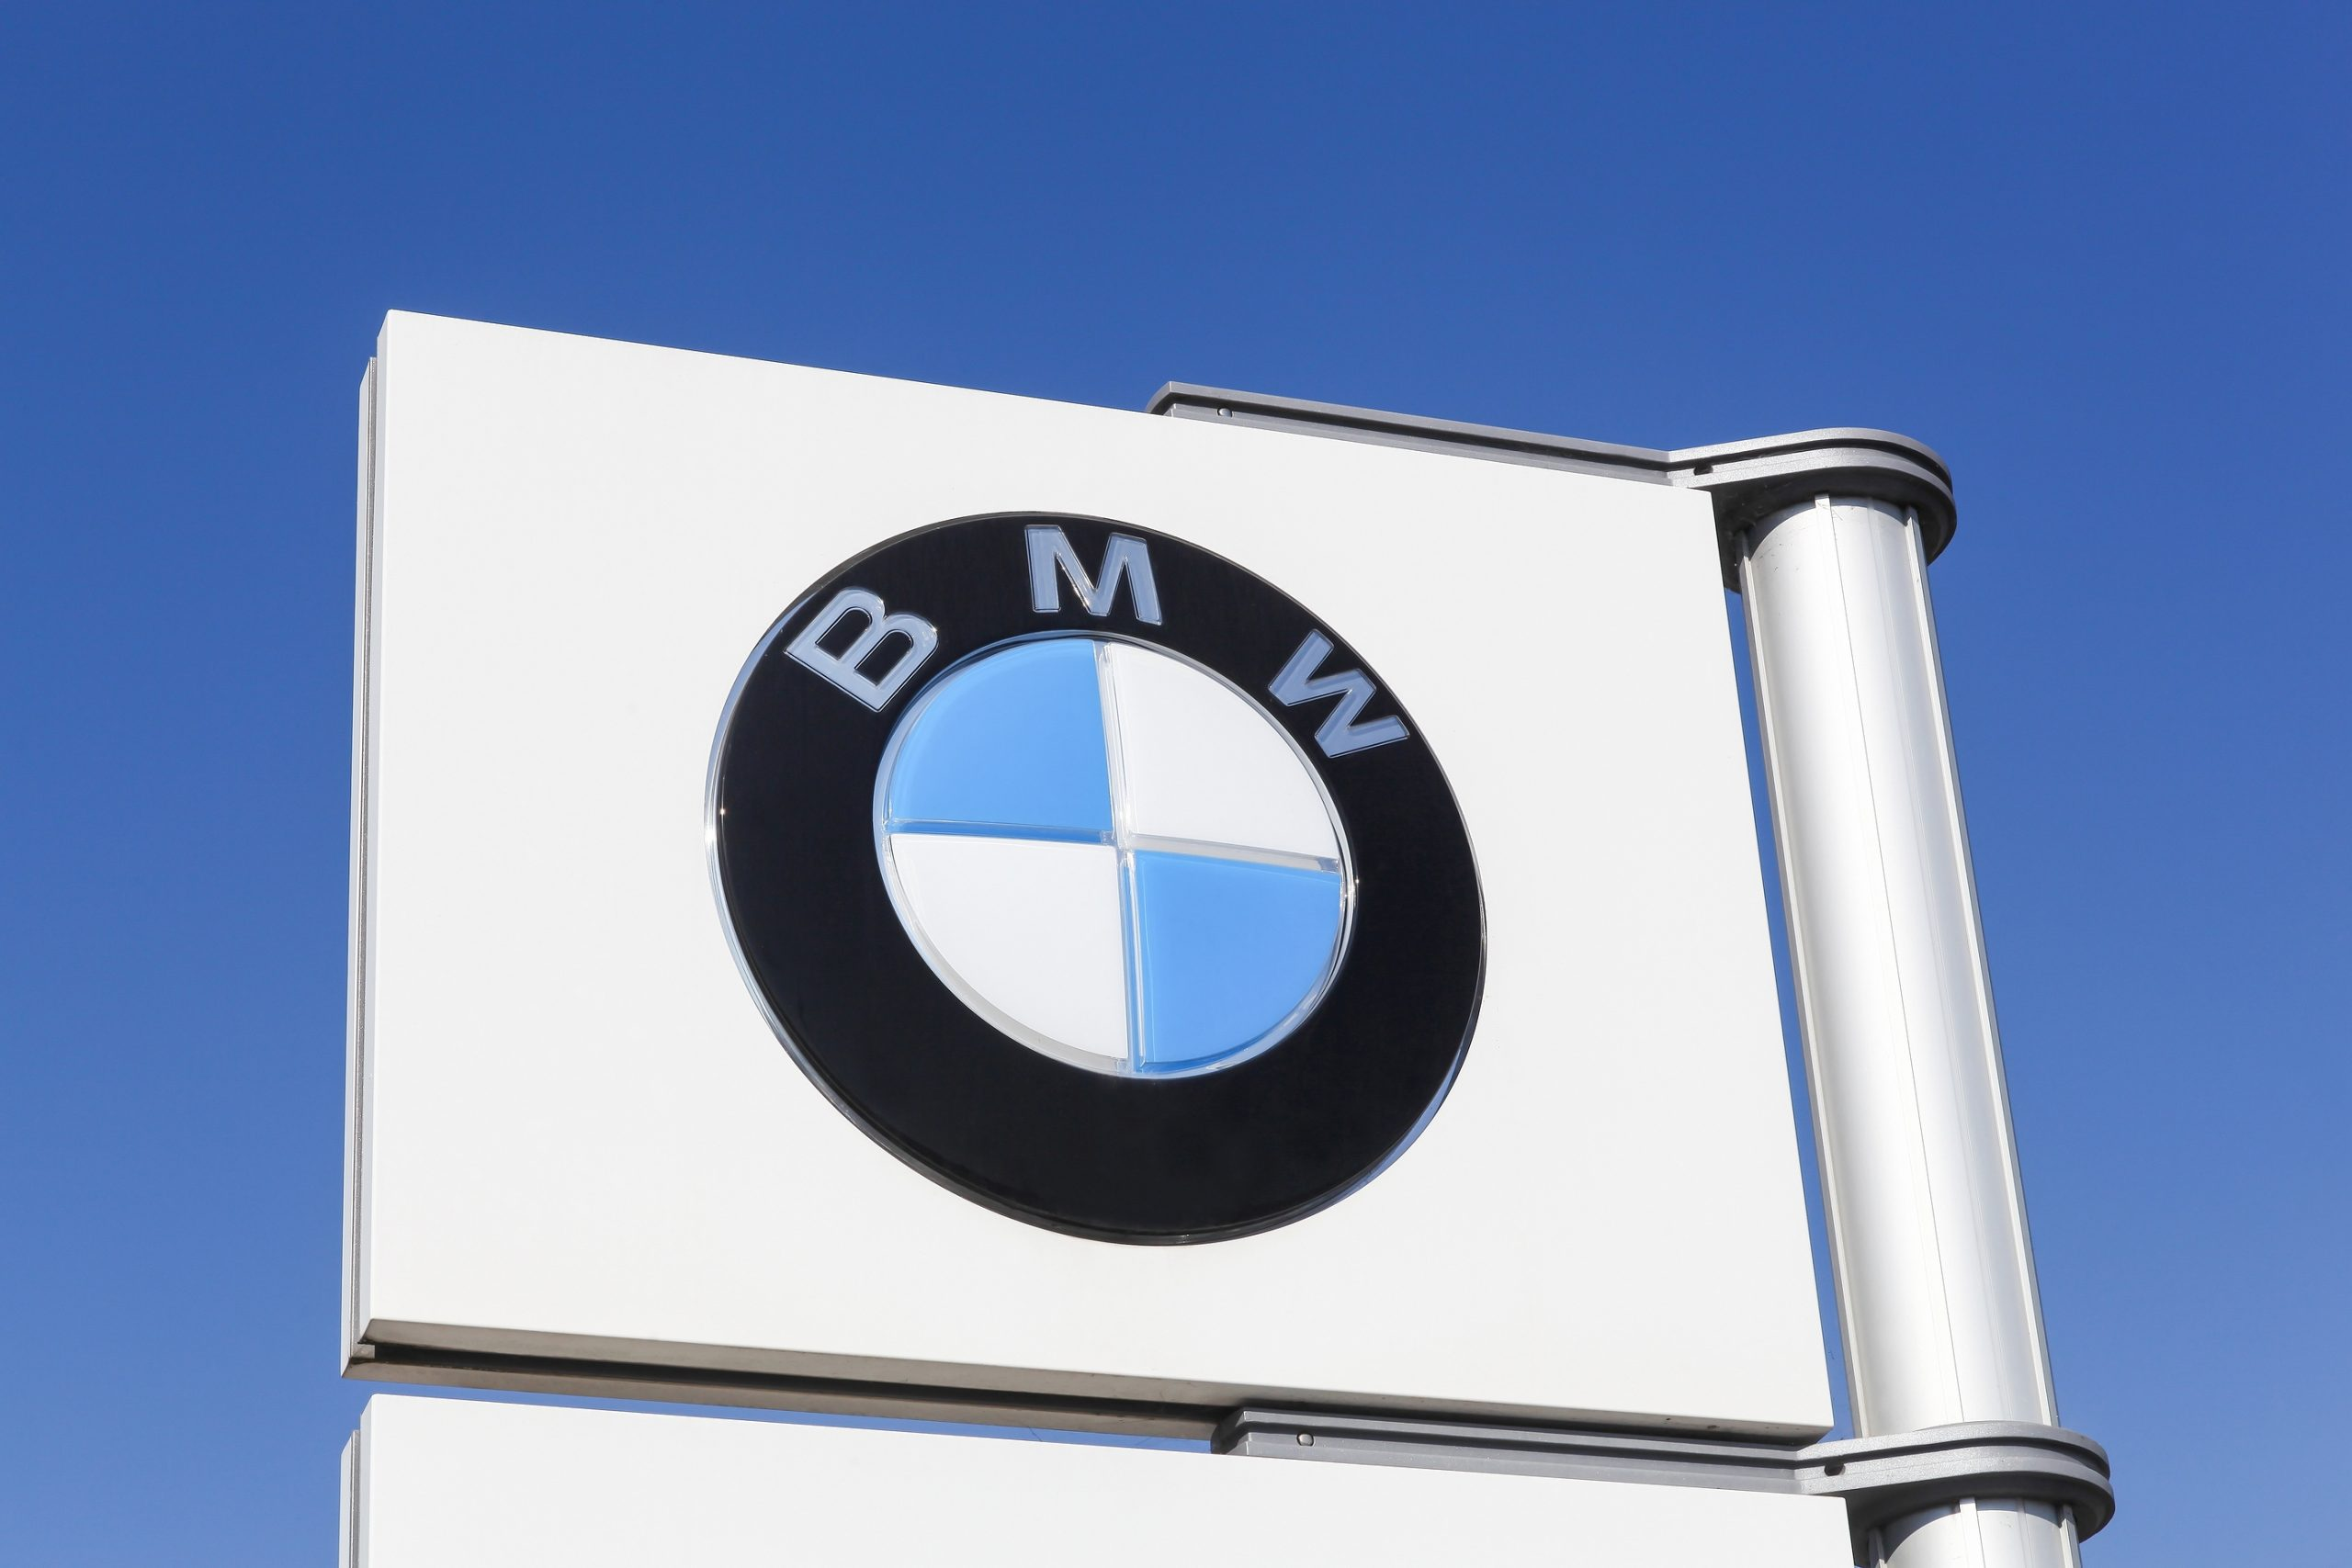 Where Can I Sell My BMW Fast?